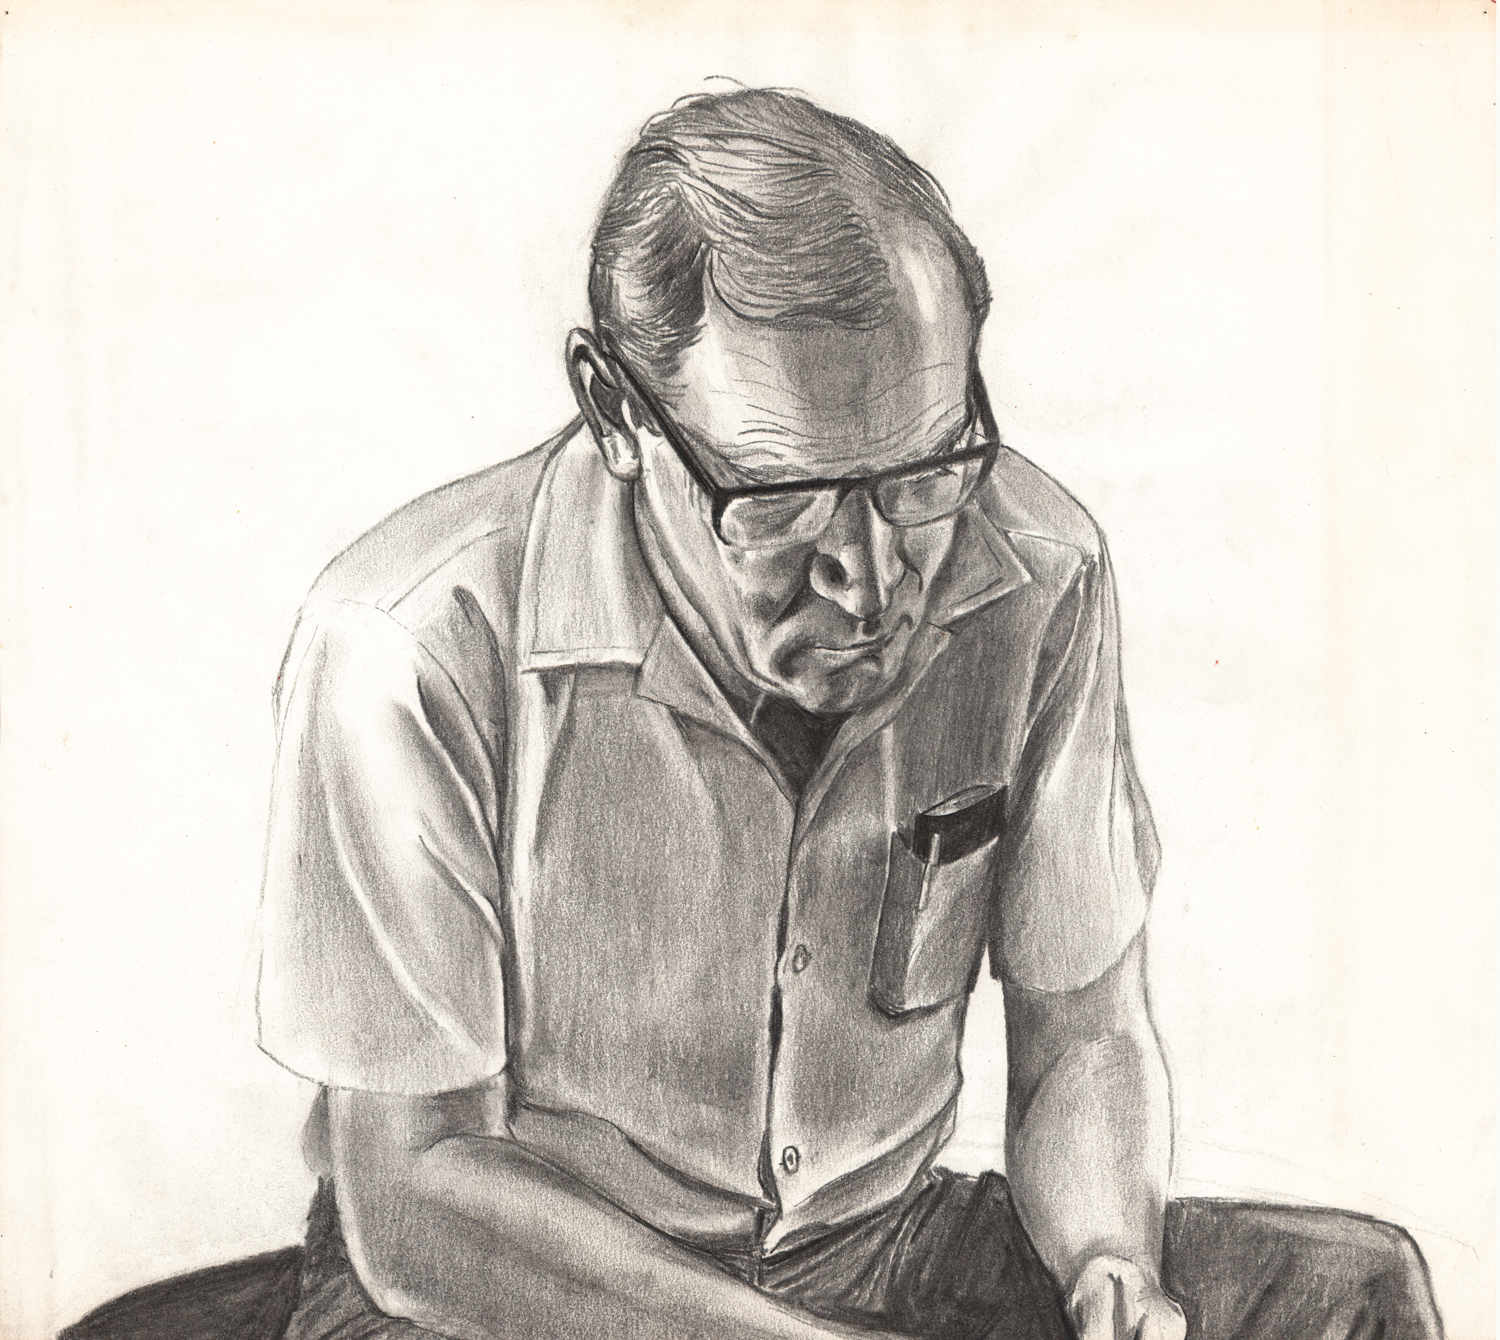 Dick Concentrating - Pencil Drawing - 15